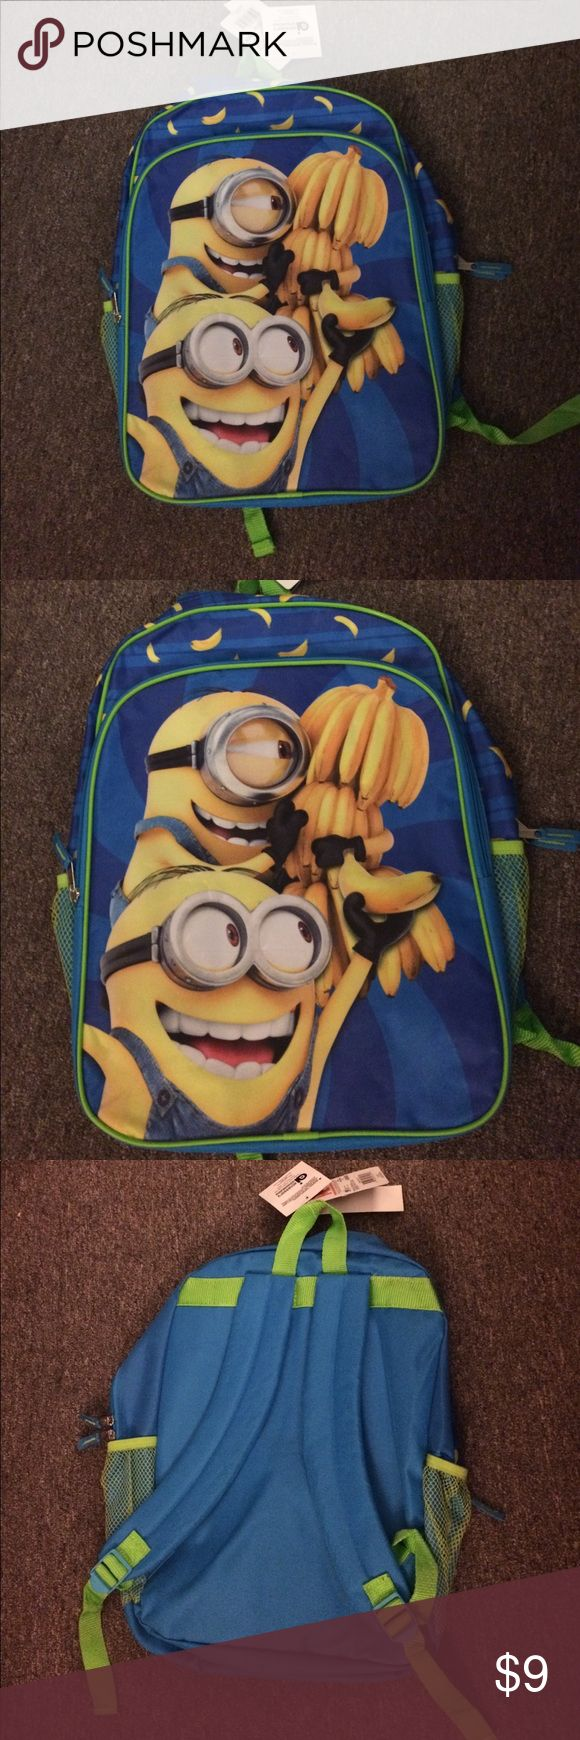 Minions Backpack Minions Backpack, Brand New never used, tiny tear in mesh pocket as seen in last pic Disney Accessories Bags